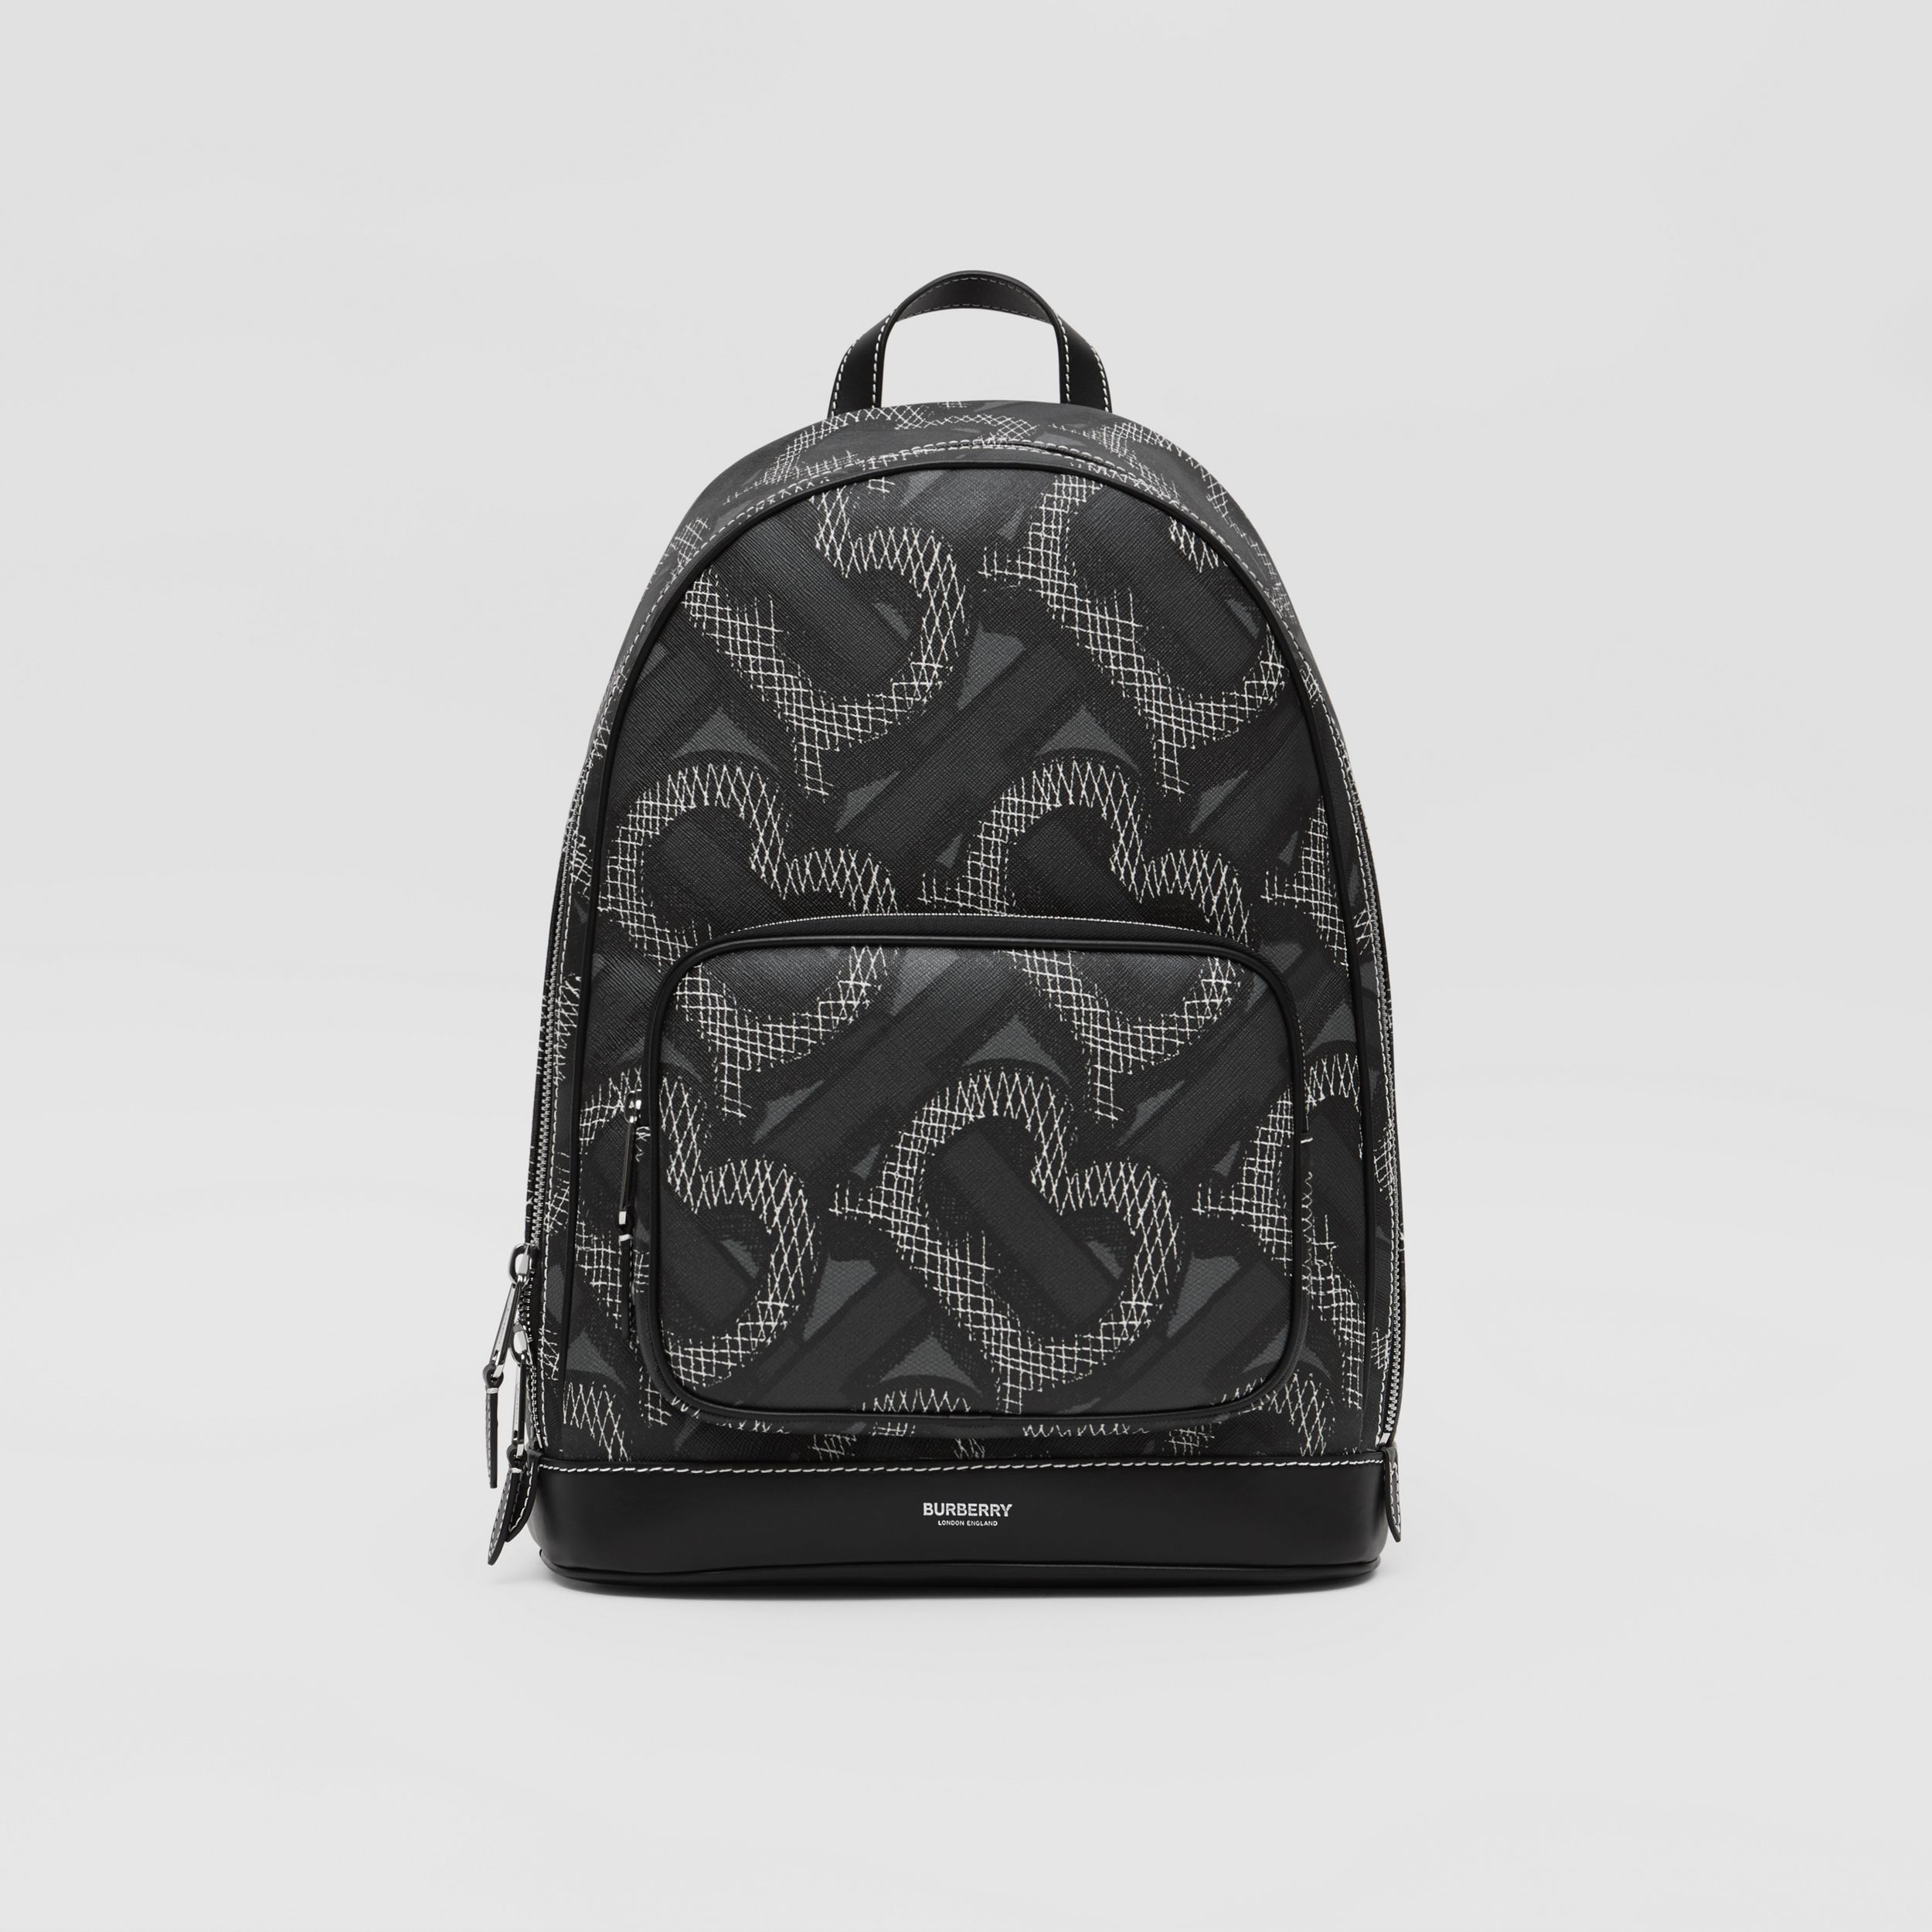 Monogram Print E-canvas Backpack in Graphite | Burberry - 1